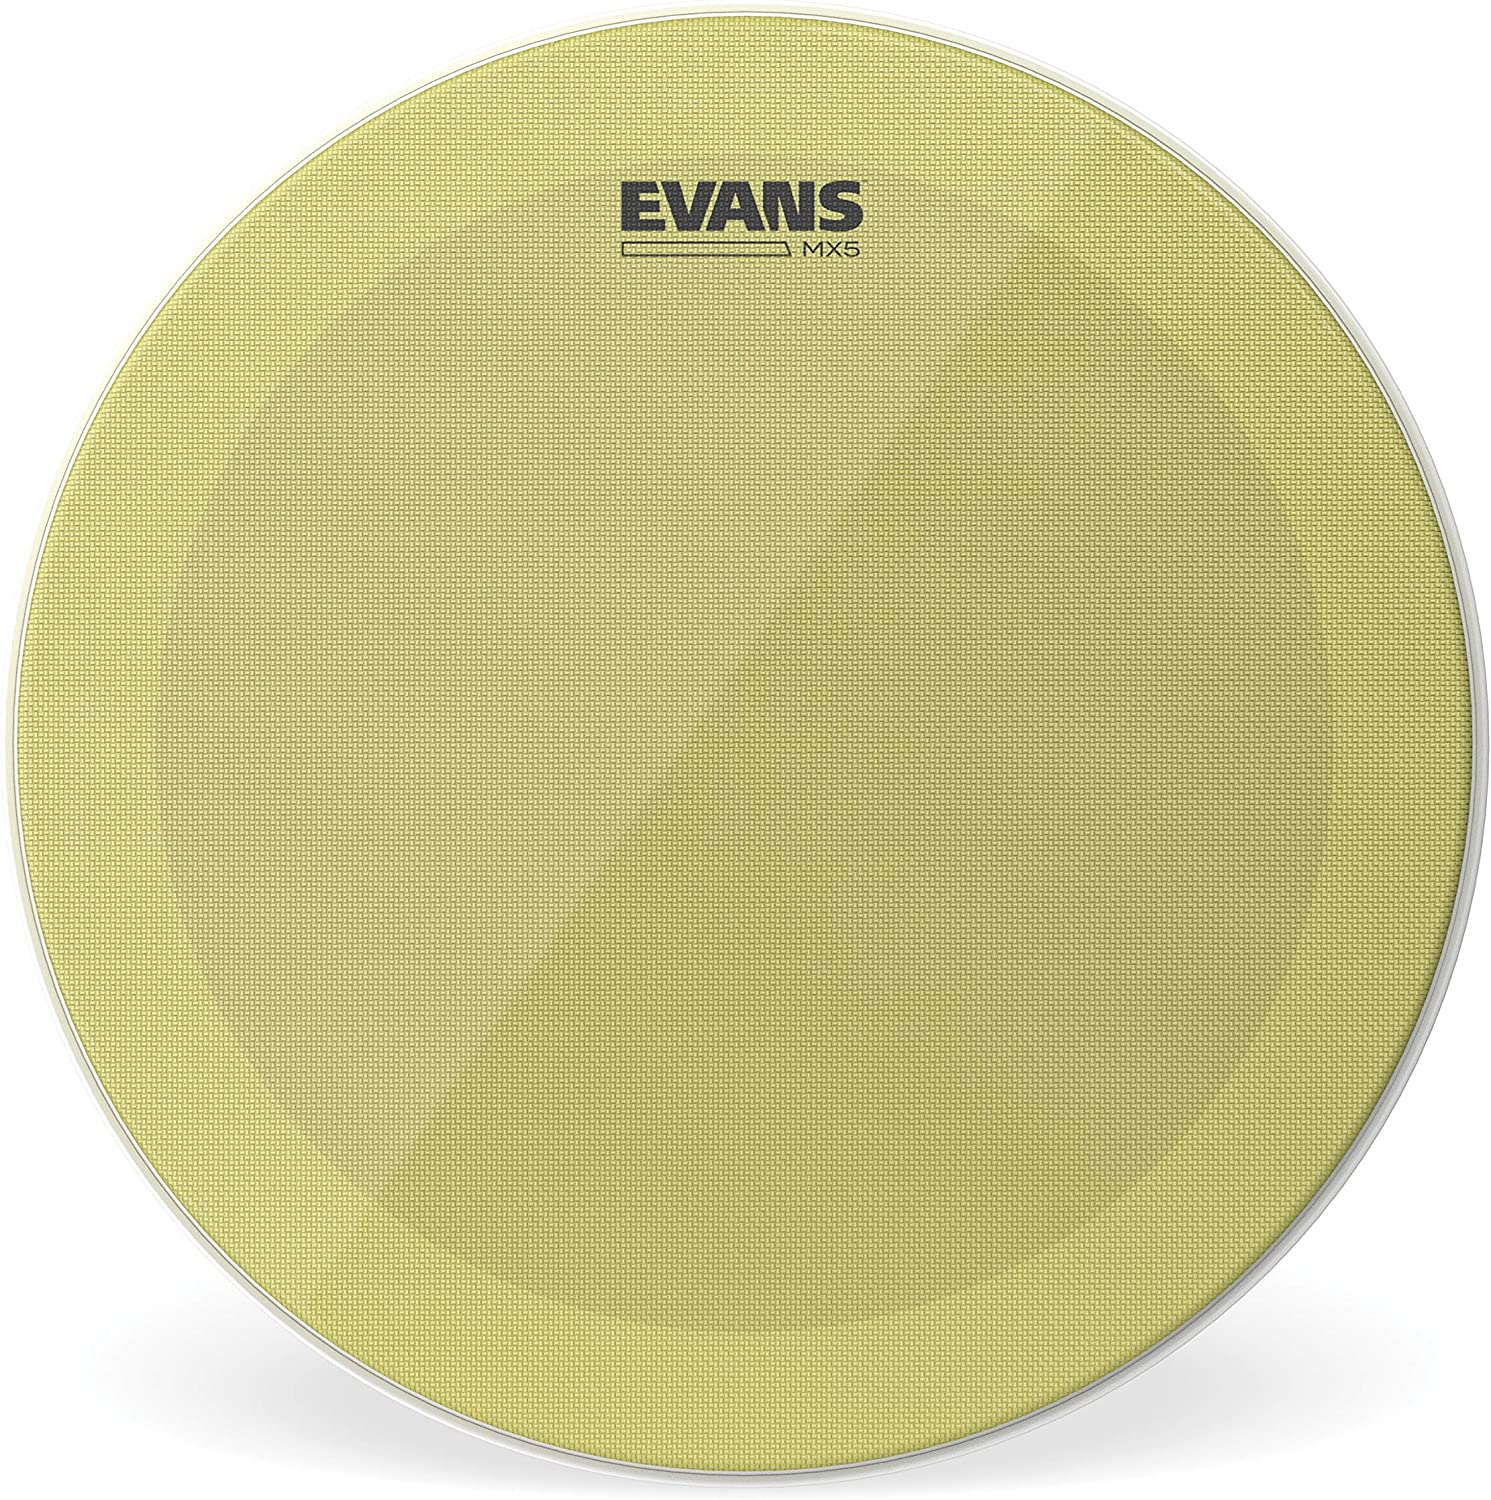 Evans MX5 Marching Snare Side Drum Head, 13 Inch 91egTbpfLOL